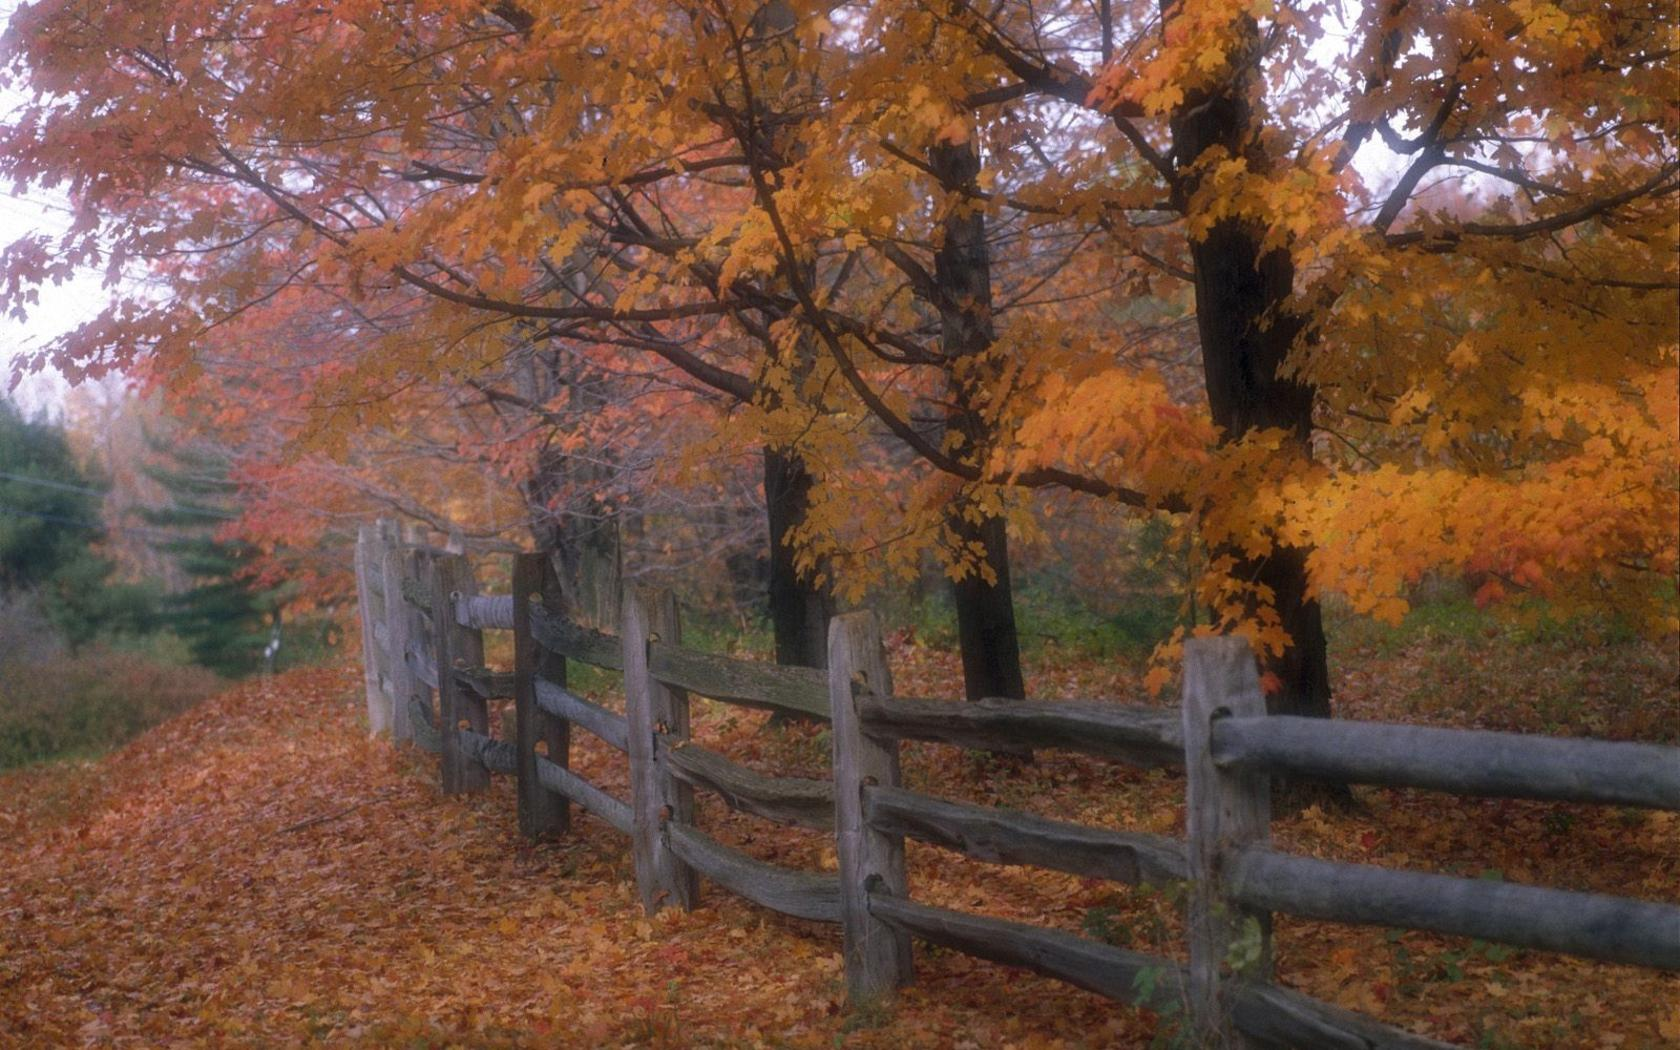 Fence Autumn Nature Scenery Wallpapers For Desktop Backgrounds 1680x1050